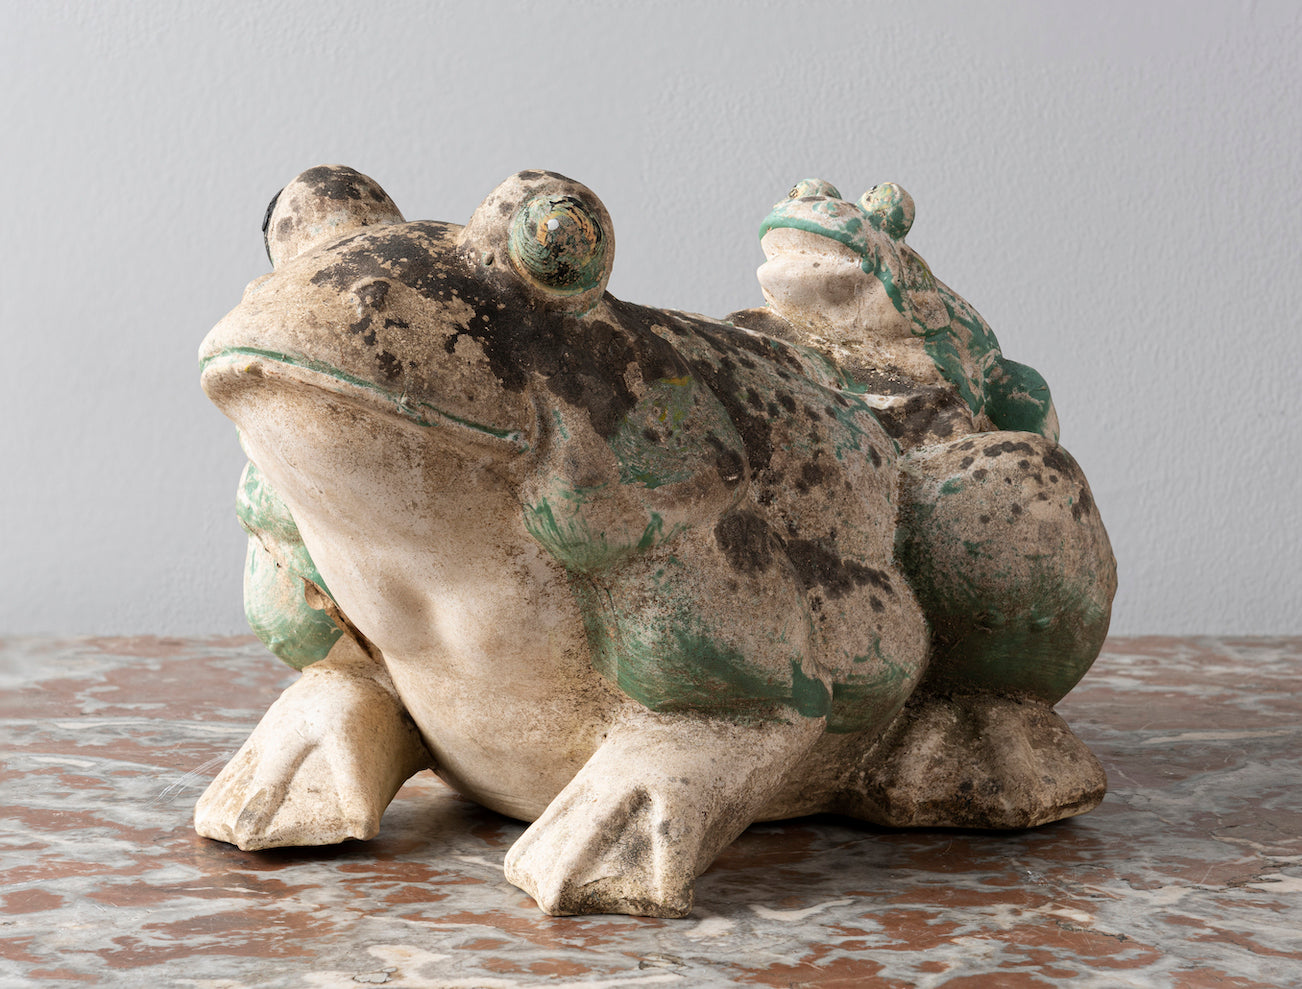 A decorative and charming painted ceramic garden frog